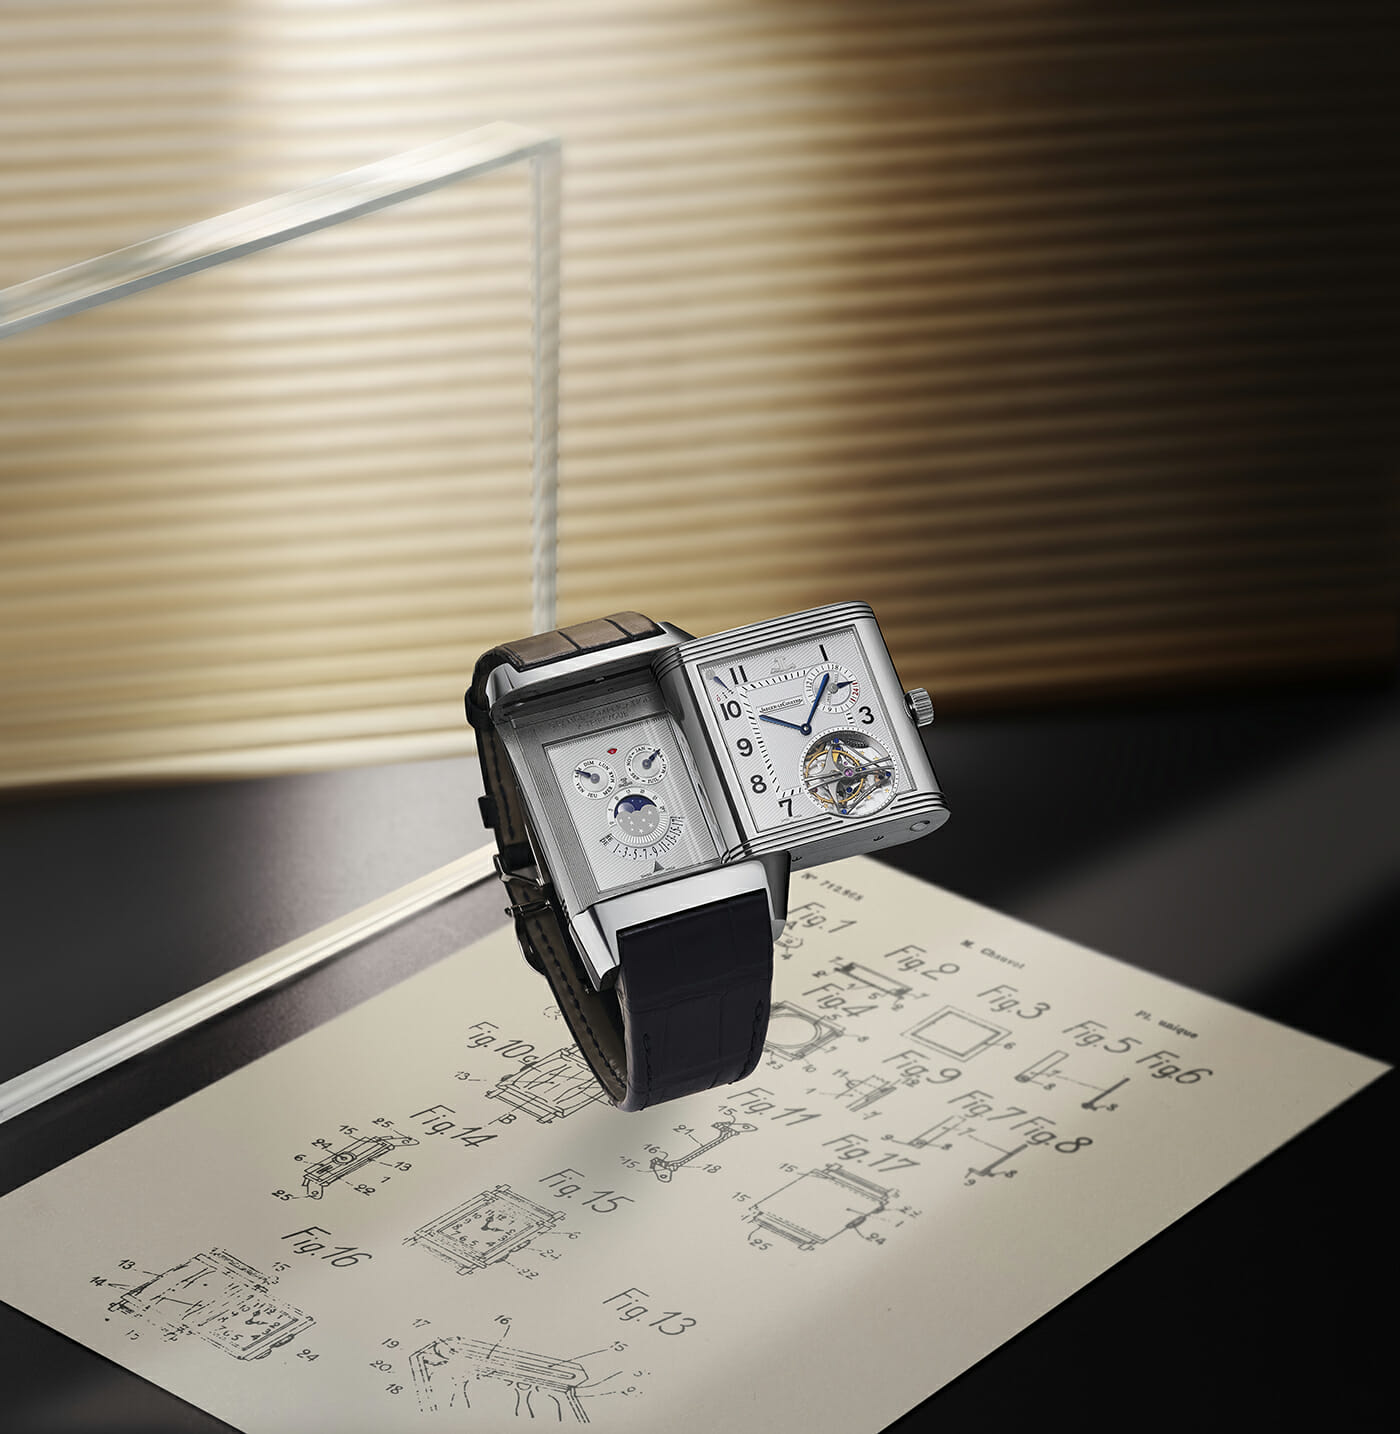 2006 Heritage Reverso Jaeger-LeCoultre timepiece